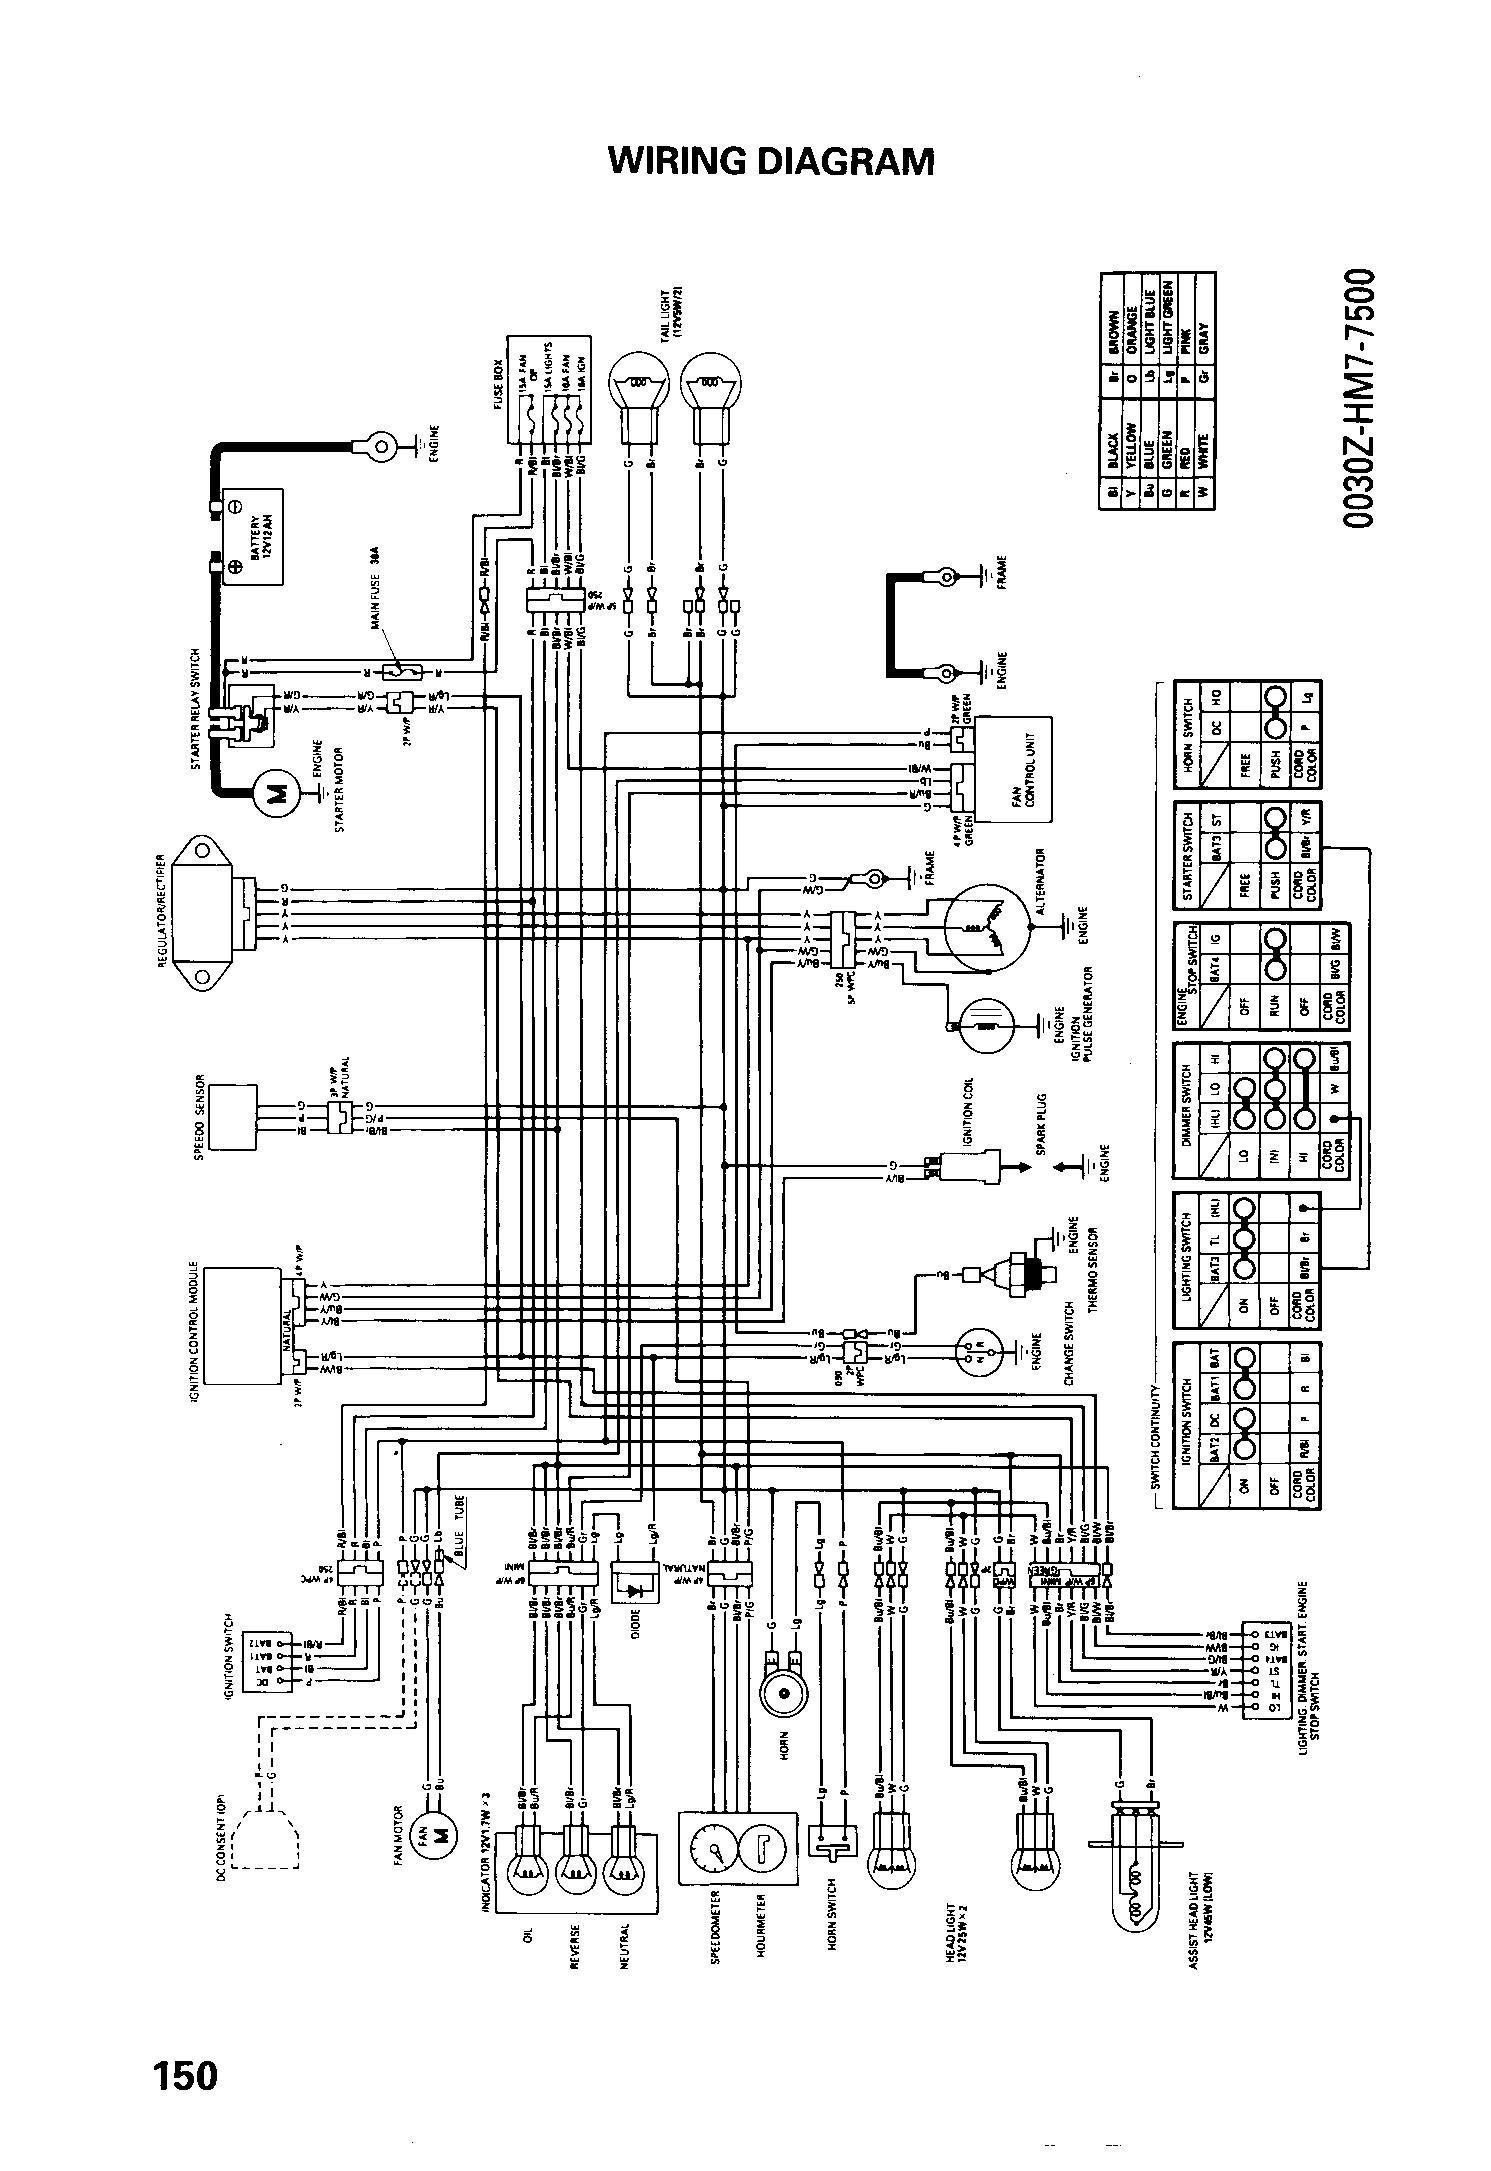 03 400ex wiring diagram wiring diagrams best rh 87 e v e l y n de 2002 honda  400ex parts diagram 2001 honda 400ex parts diagram